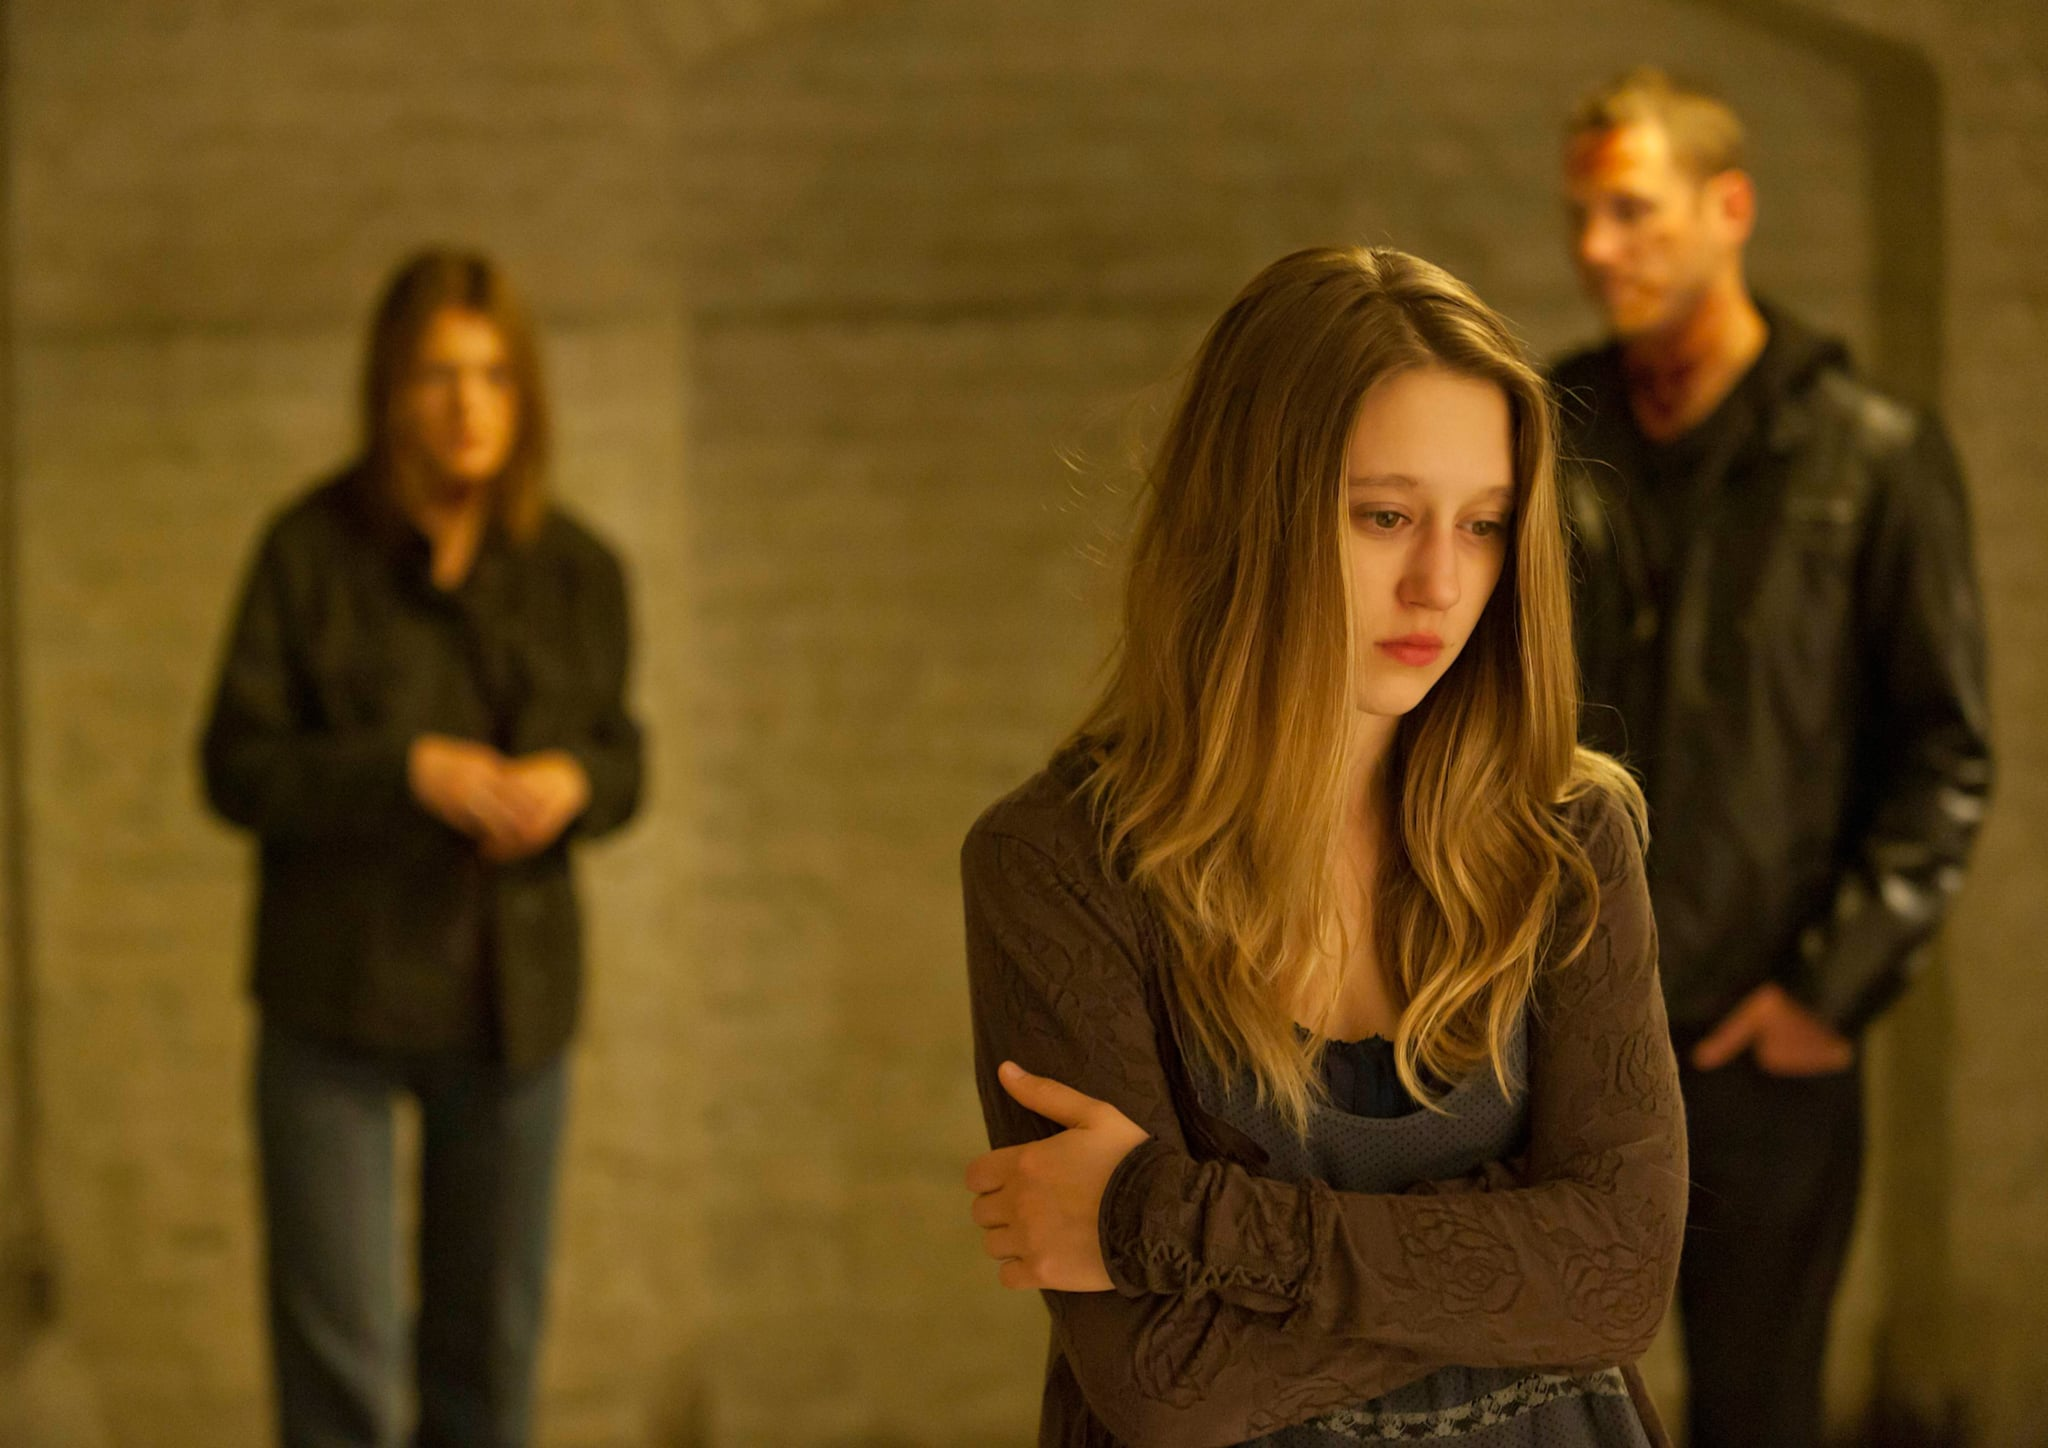 AMERICAN HORROR STORY: MURDER HOUSE, center front: Taissa Farmiga in 'Piggy, Piggy' (Season 1, Episode 6, aired November 9, 2011), 2011-, ph: Ray Mickshaw/FX Networks/courtesy Everett Collection